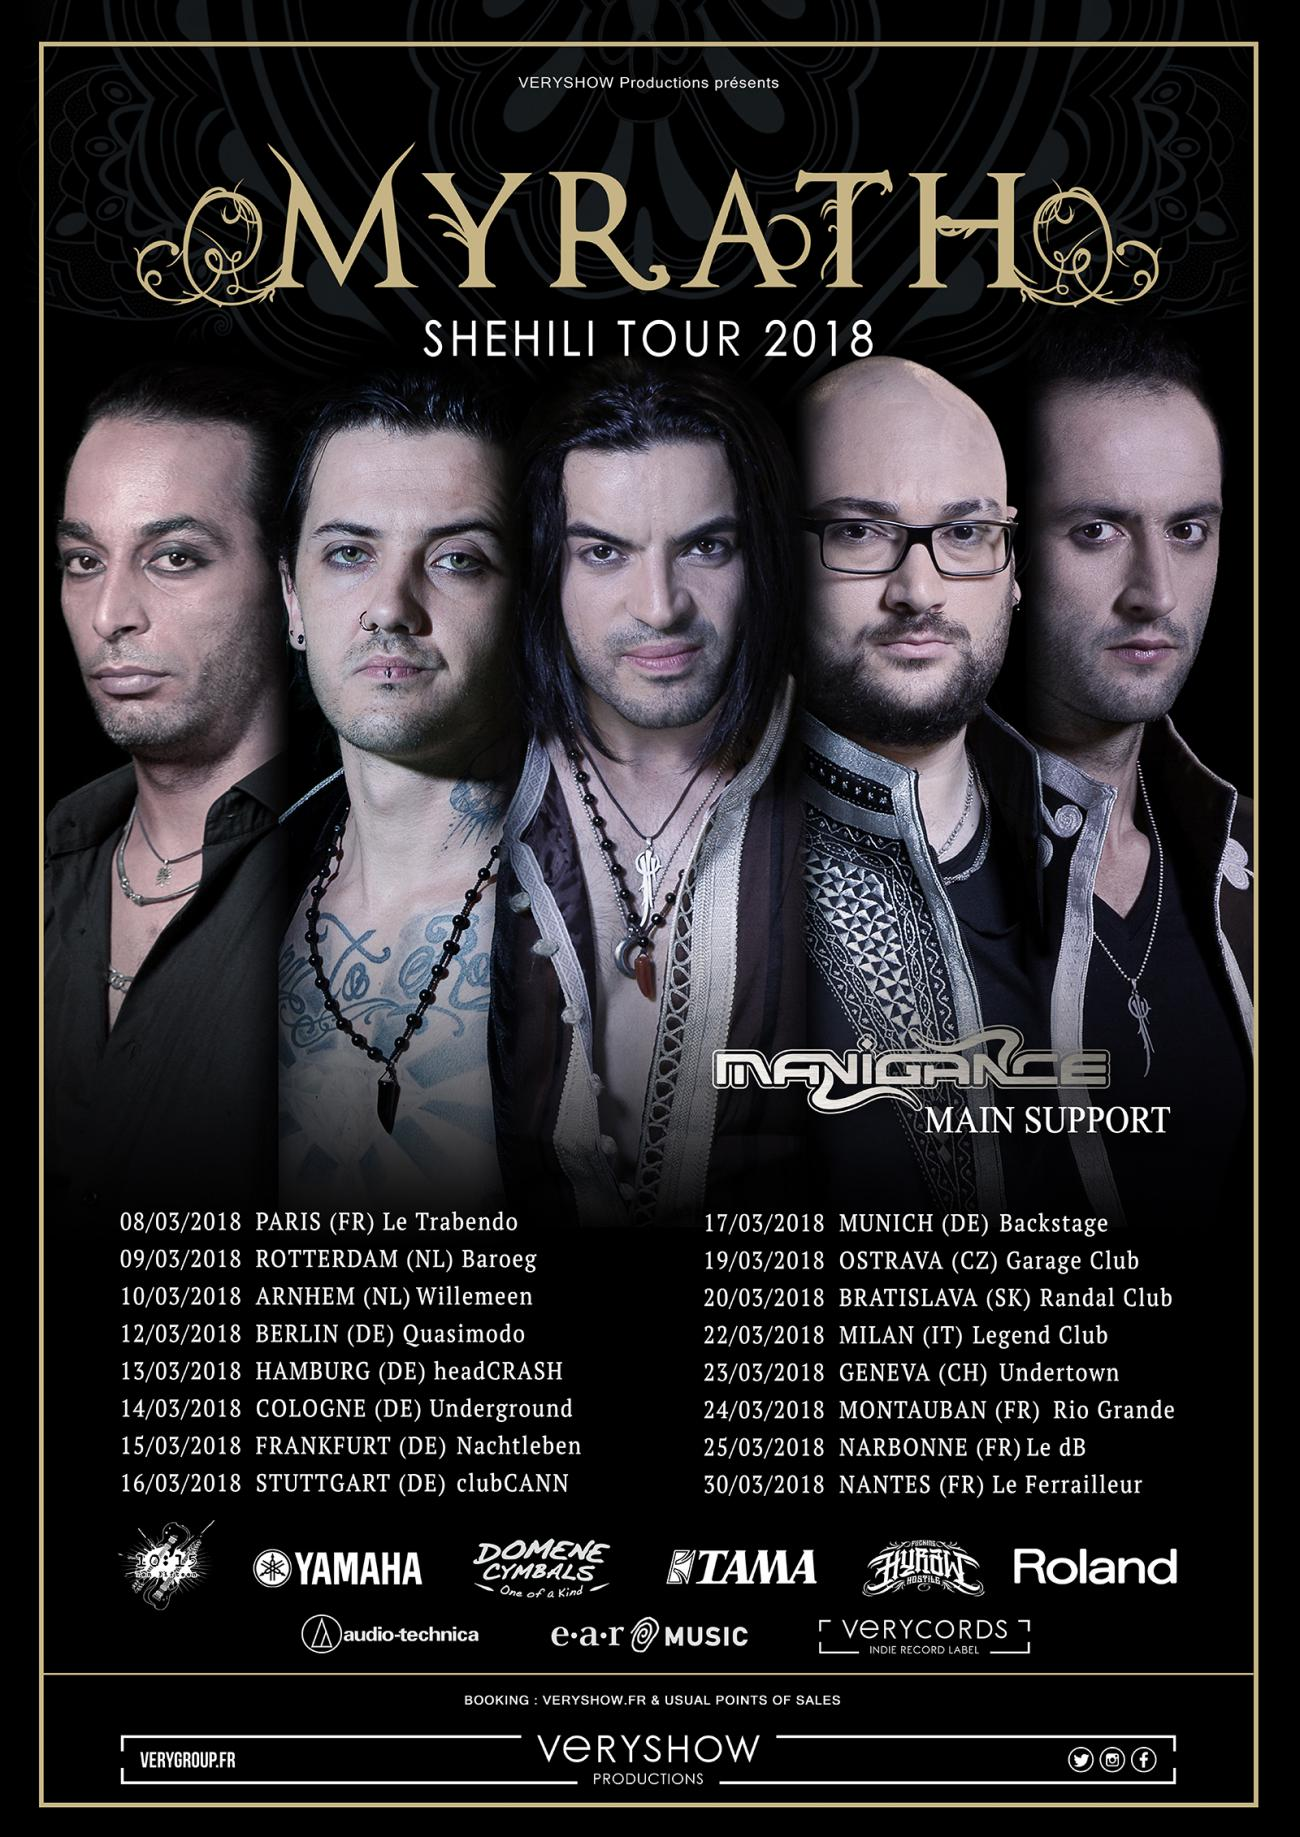 MYRATH - Shehili Tour 2018